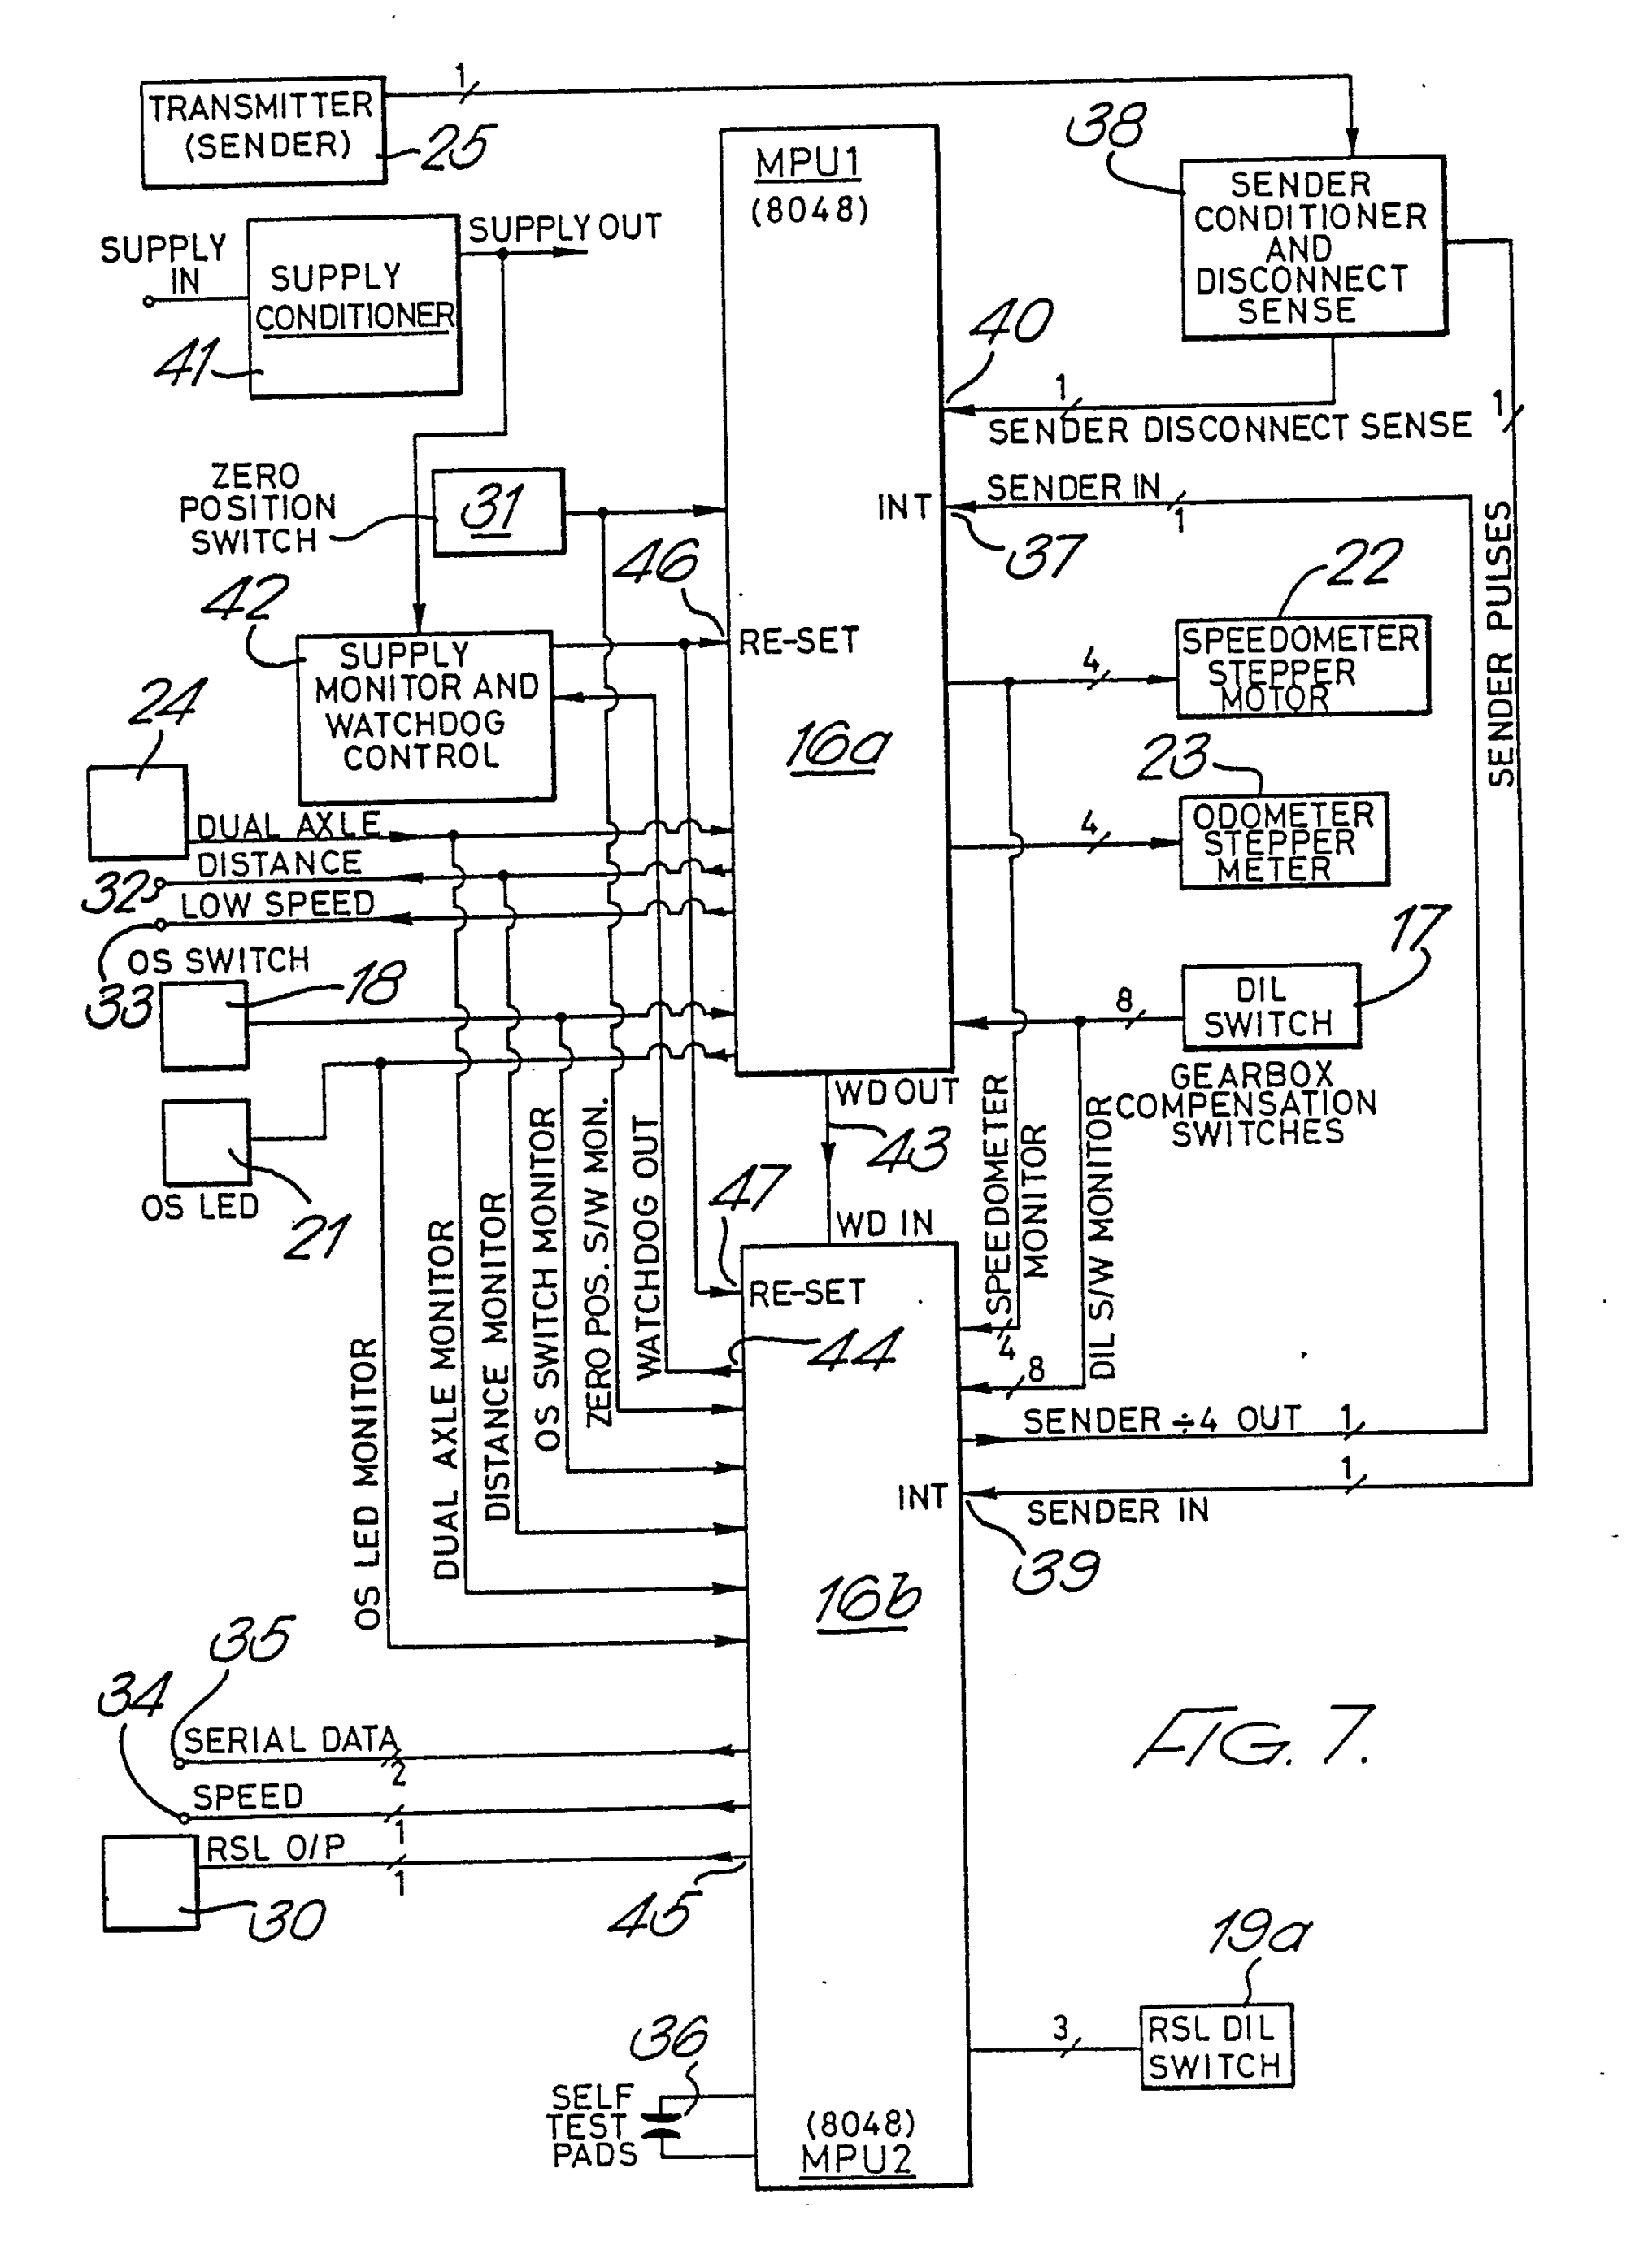 hight resolution of digital wiring schematic wiring diagram schematics diagram wire size digital wire diagram